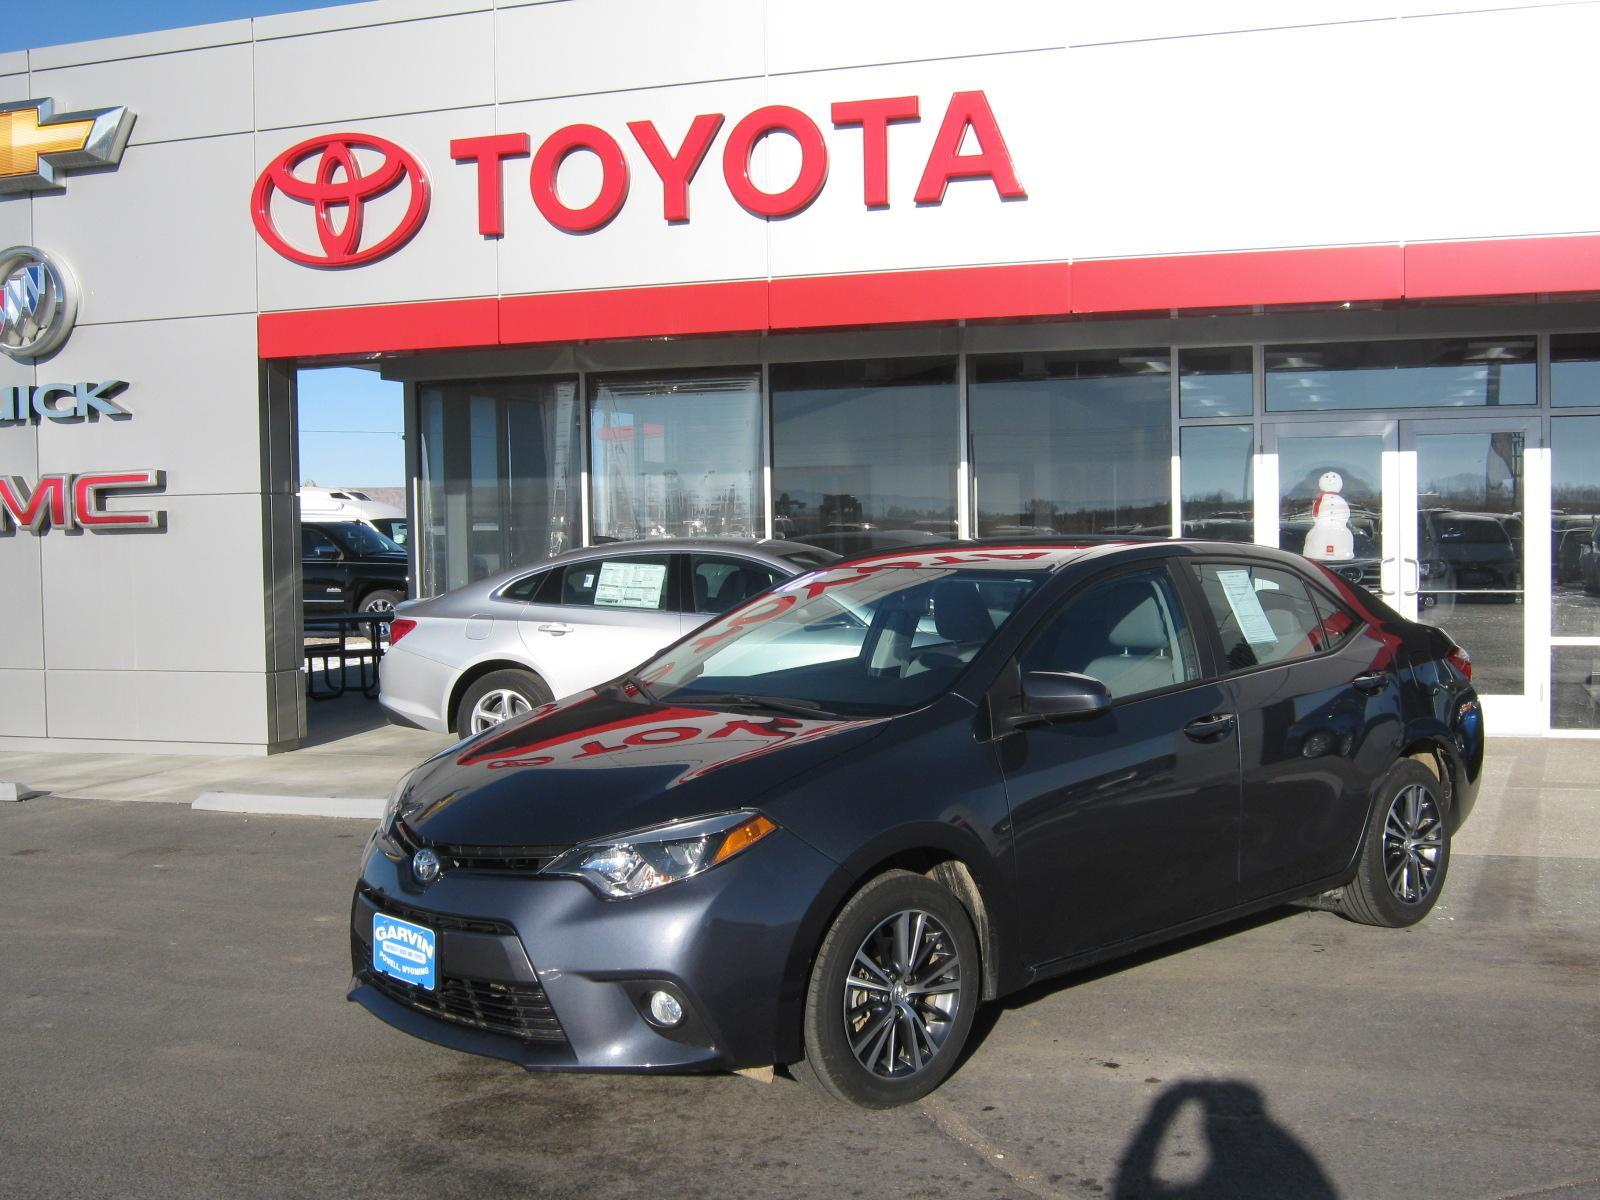 Used toyota Corolla for Sale Best Of Powell Wy Used toyota Corolla Vehicles for Sale